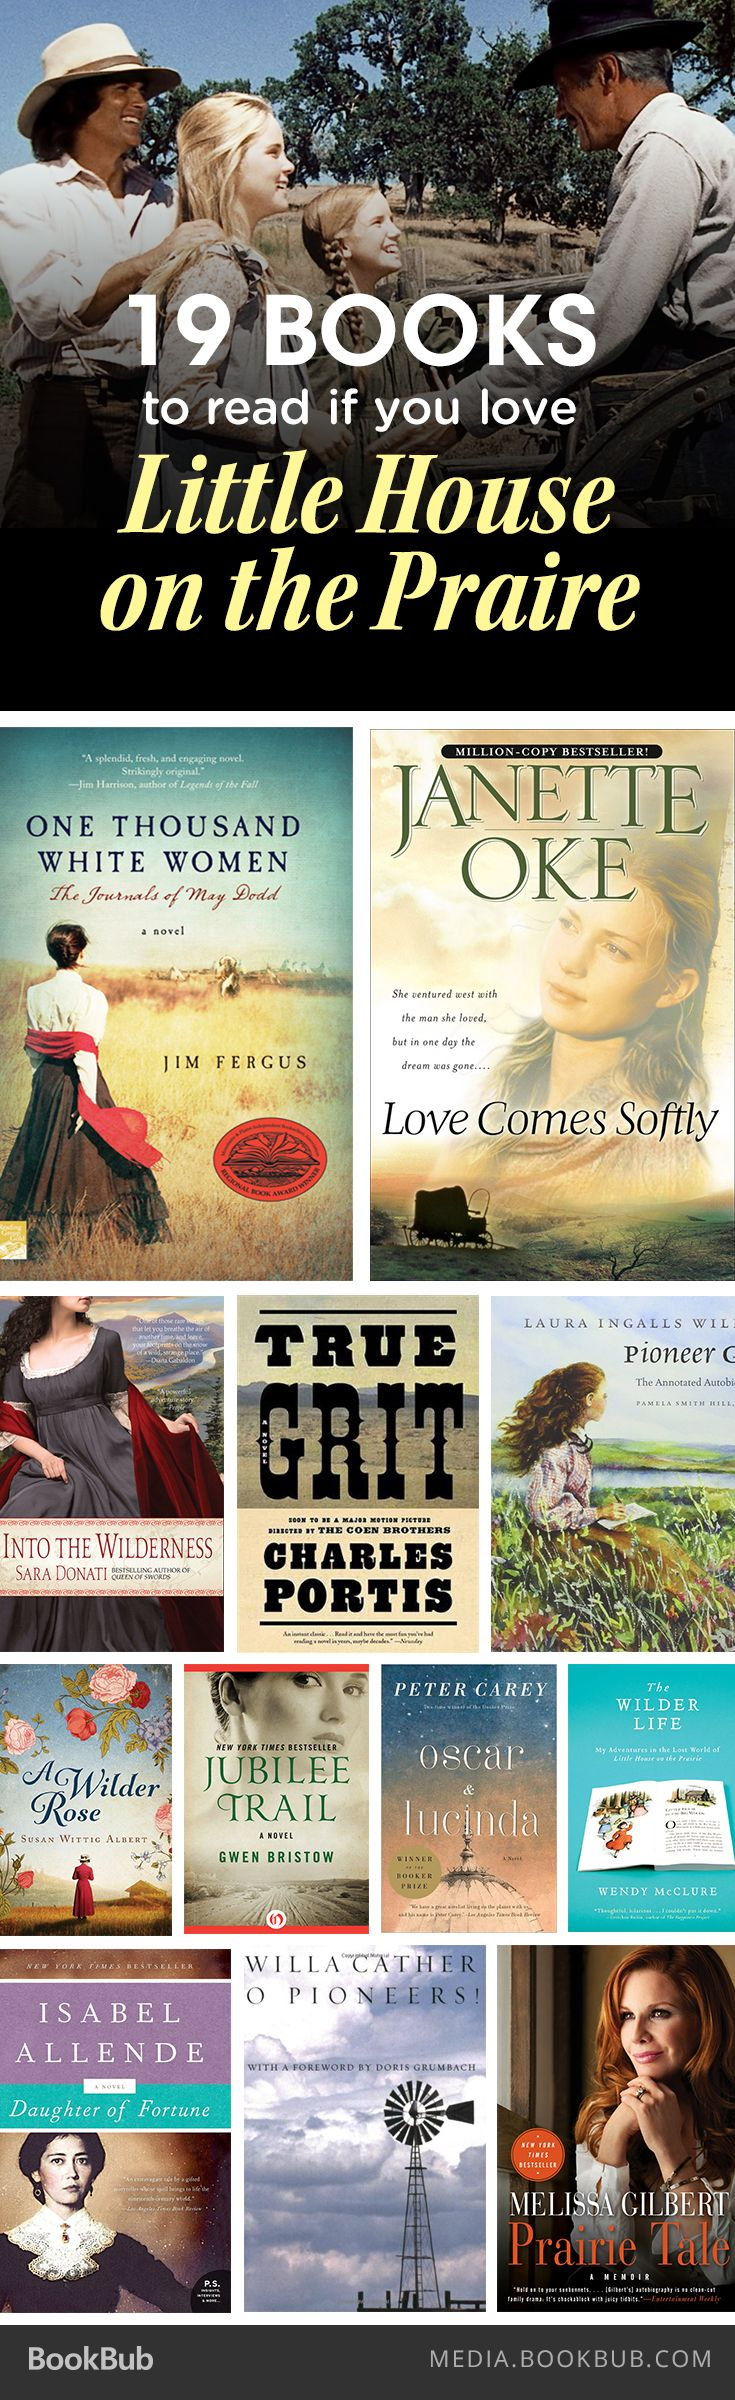 19 books to read if you love Laura Ingalls Wilder's Little House on the Prairie.